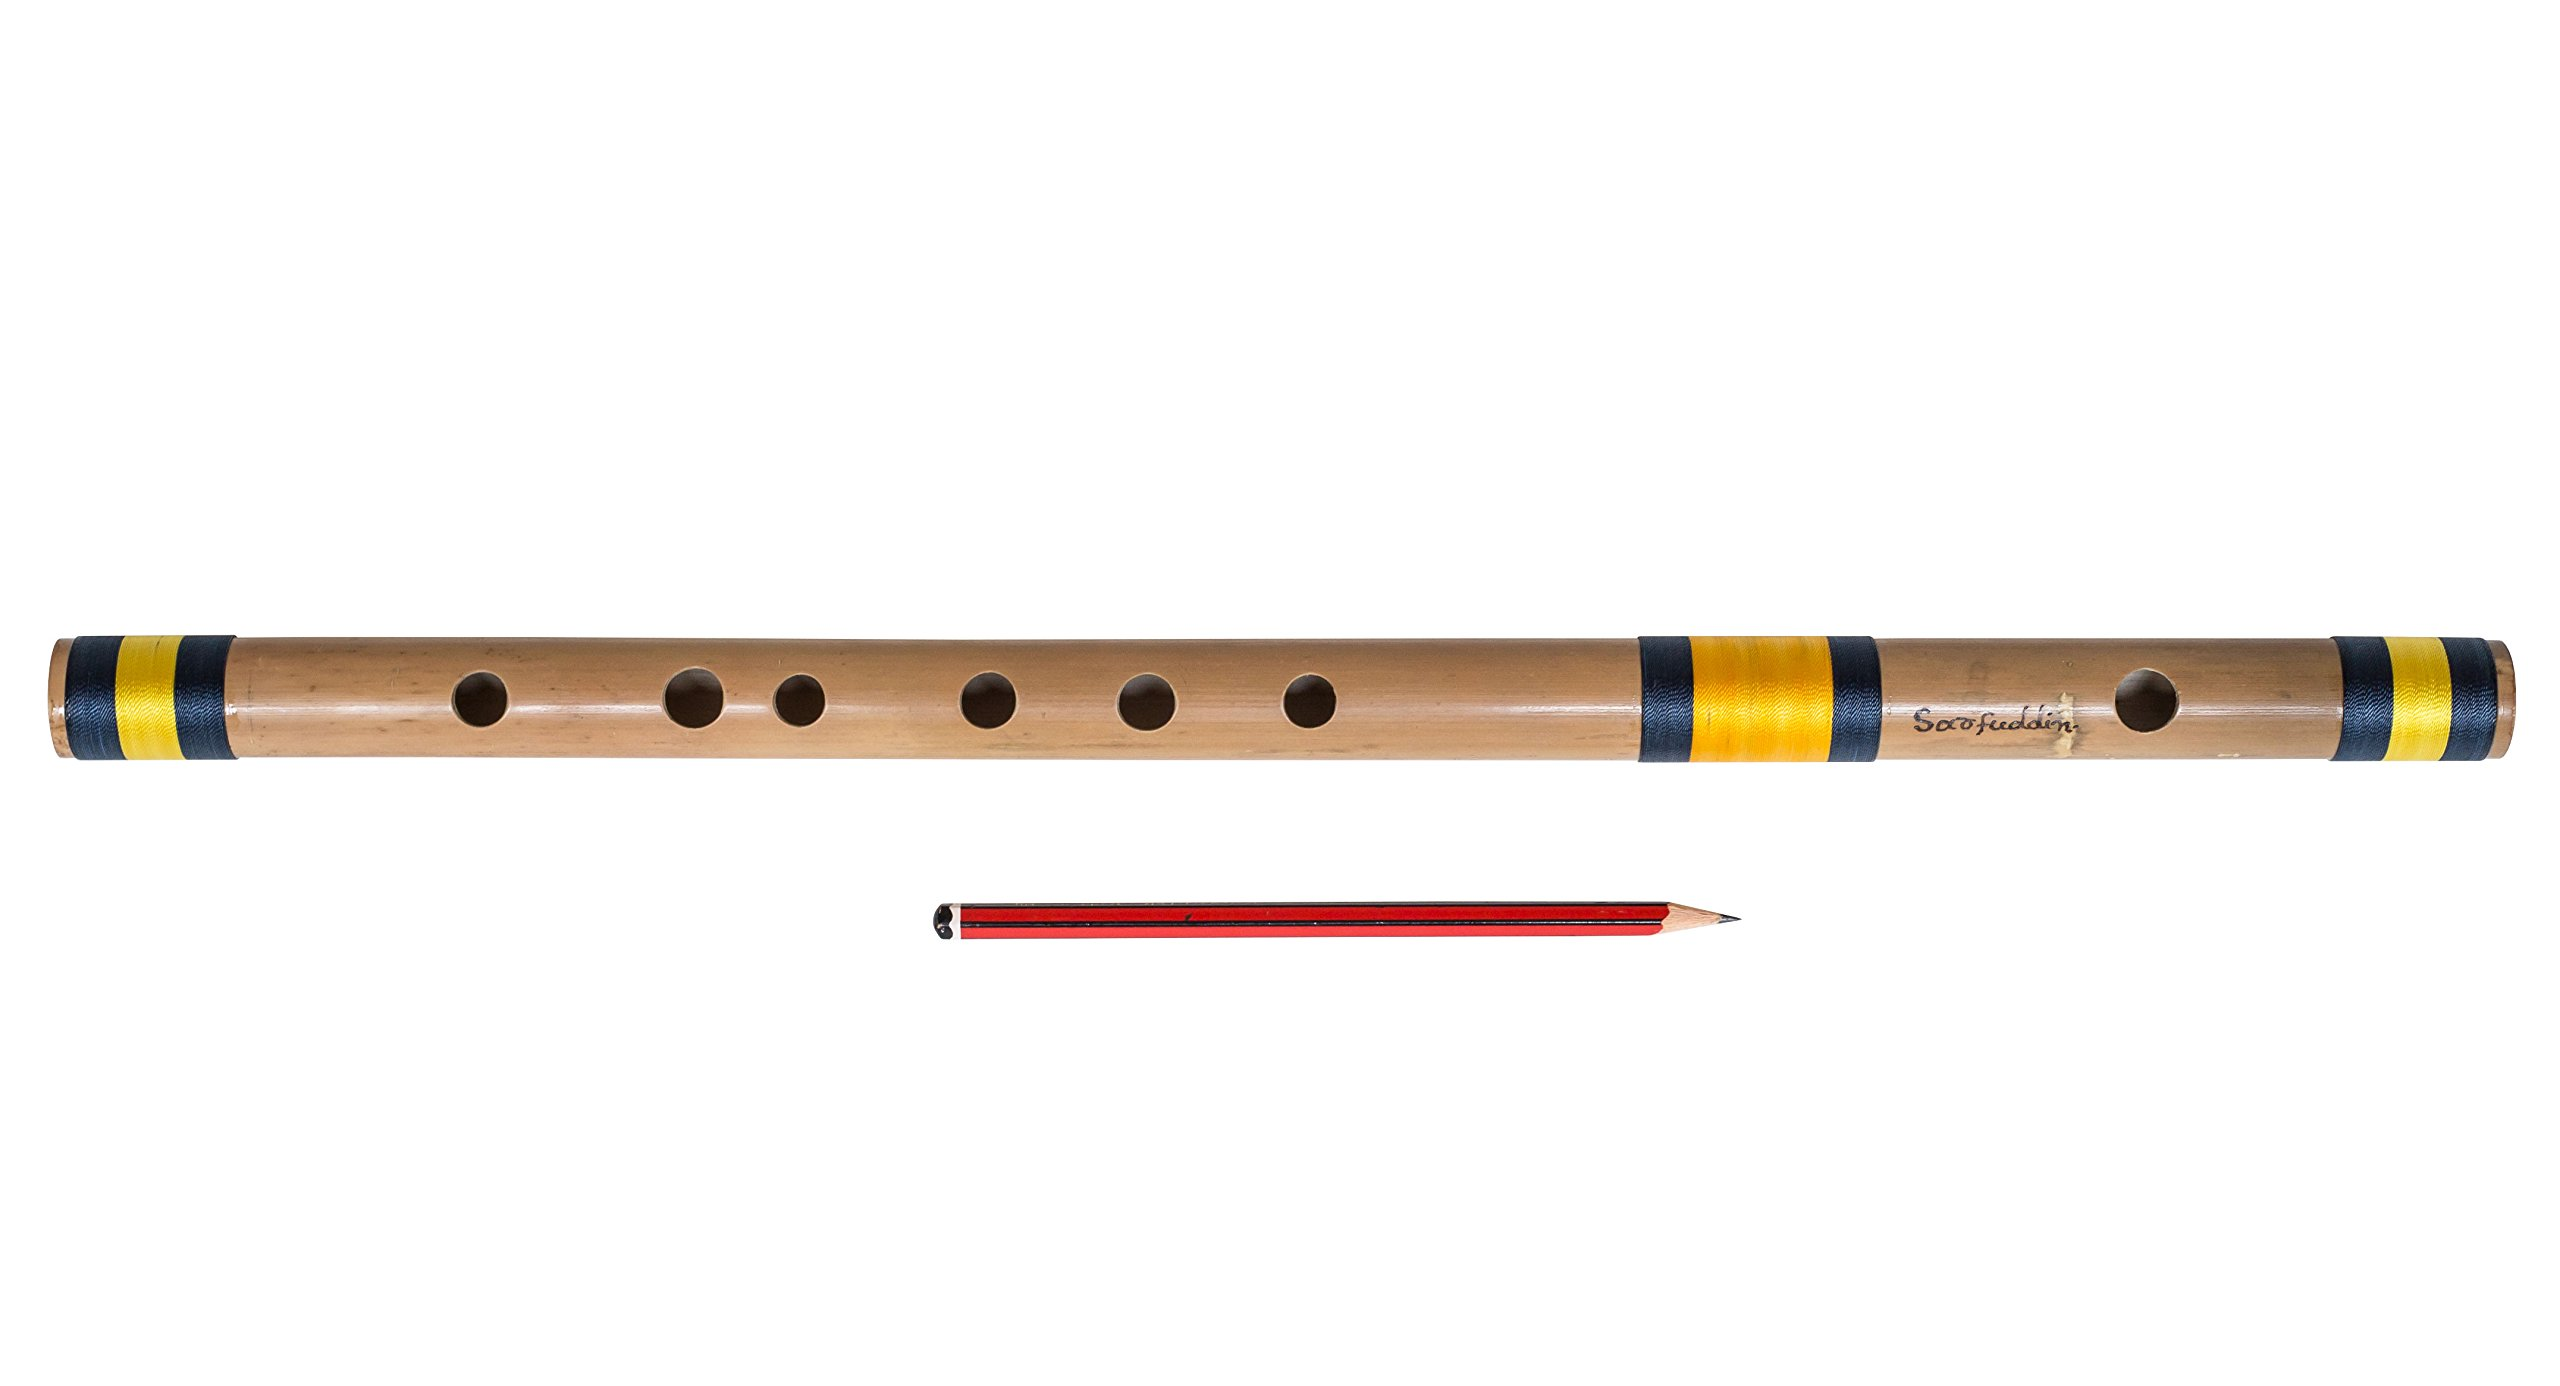 Sarfuddin Flutes, Indian Bamboo Flute, Scale C Natural Medium 19 Inches, Concert Quality, Accurately Tuned, Recommended for Beginners, Hindustani Prof. Bansuri Indian Flute, Nylon Pipe Bag (PDI-DEH)